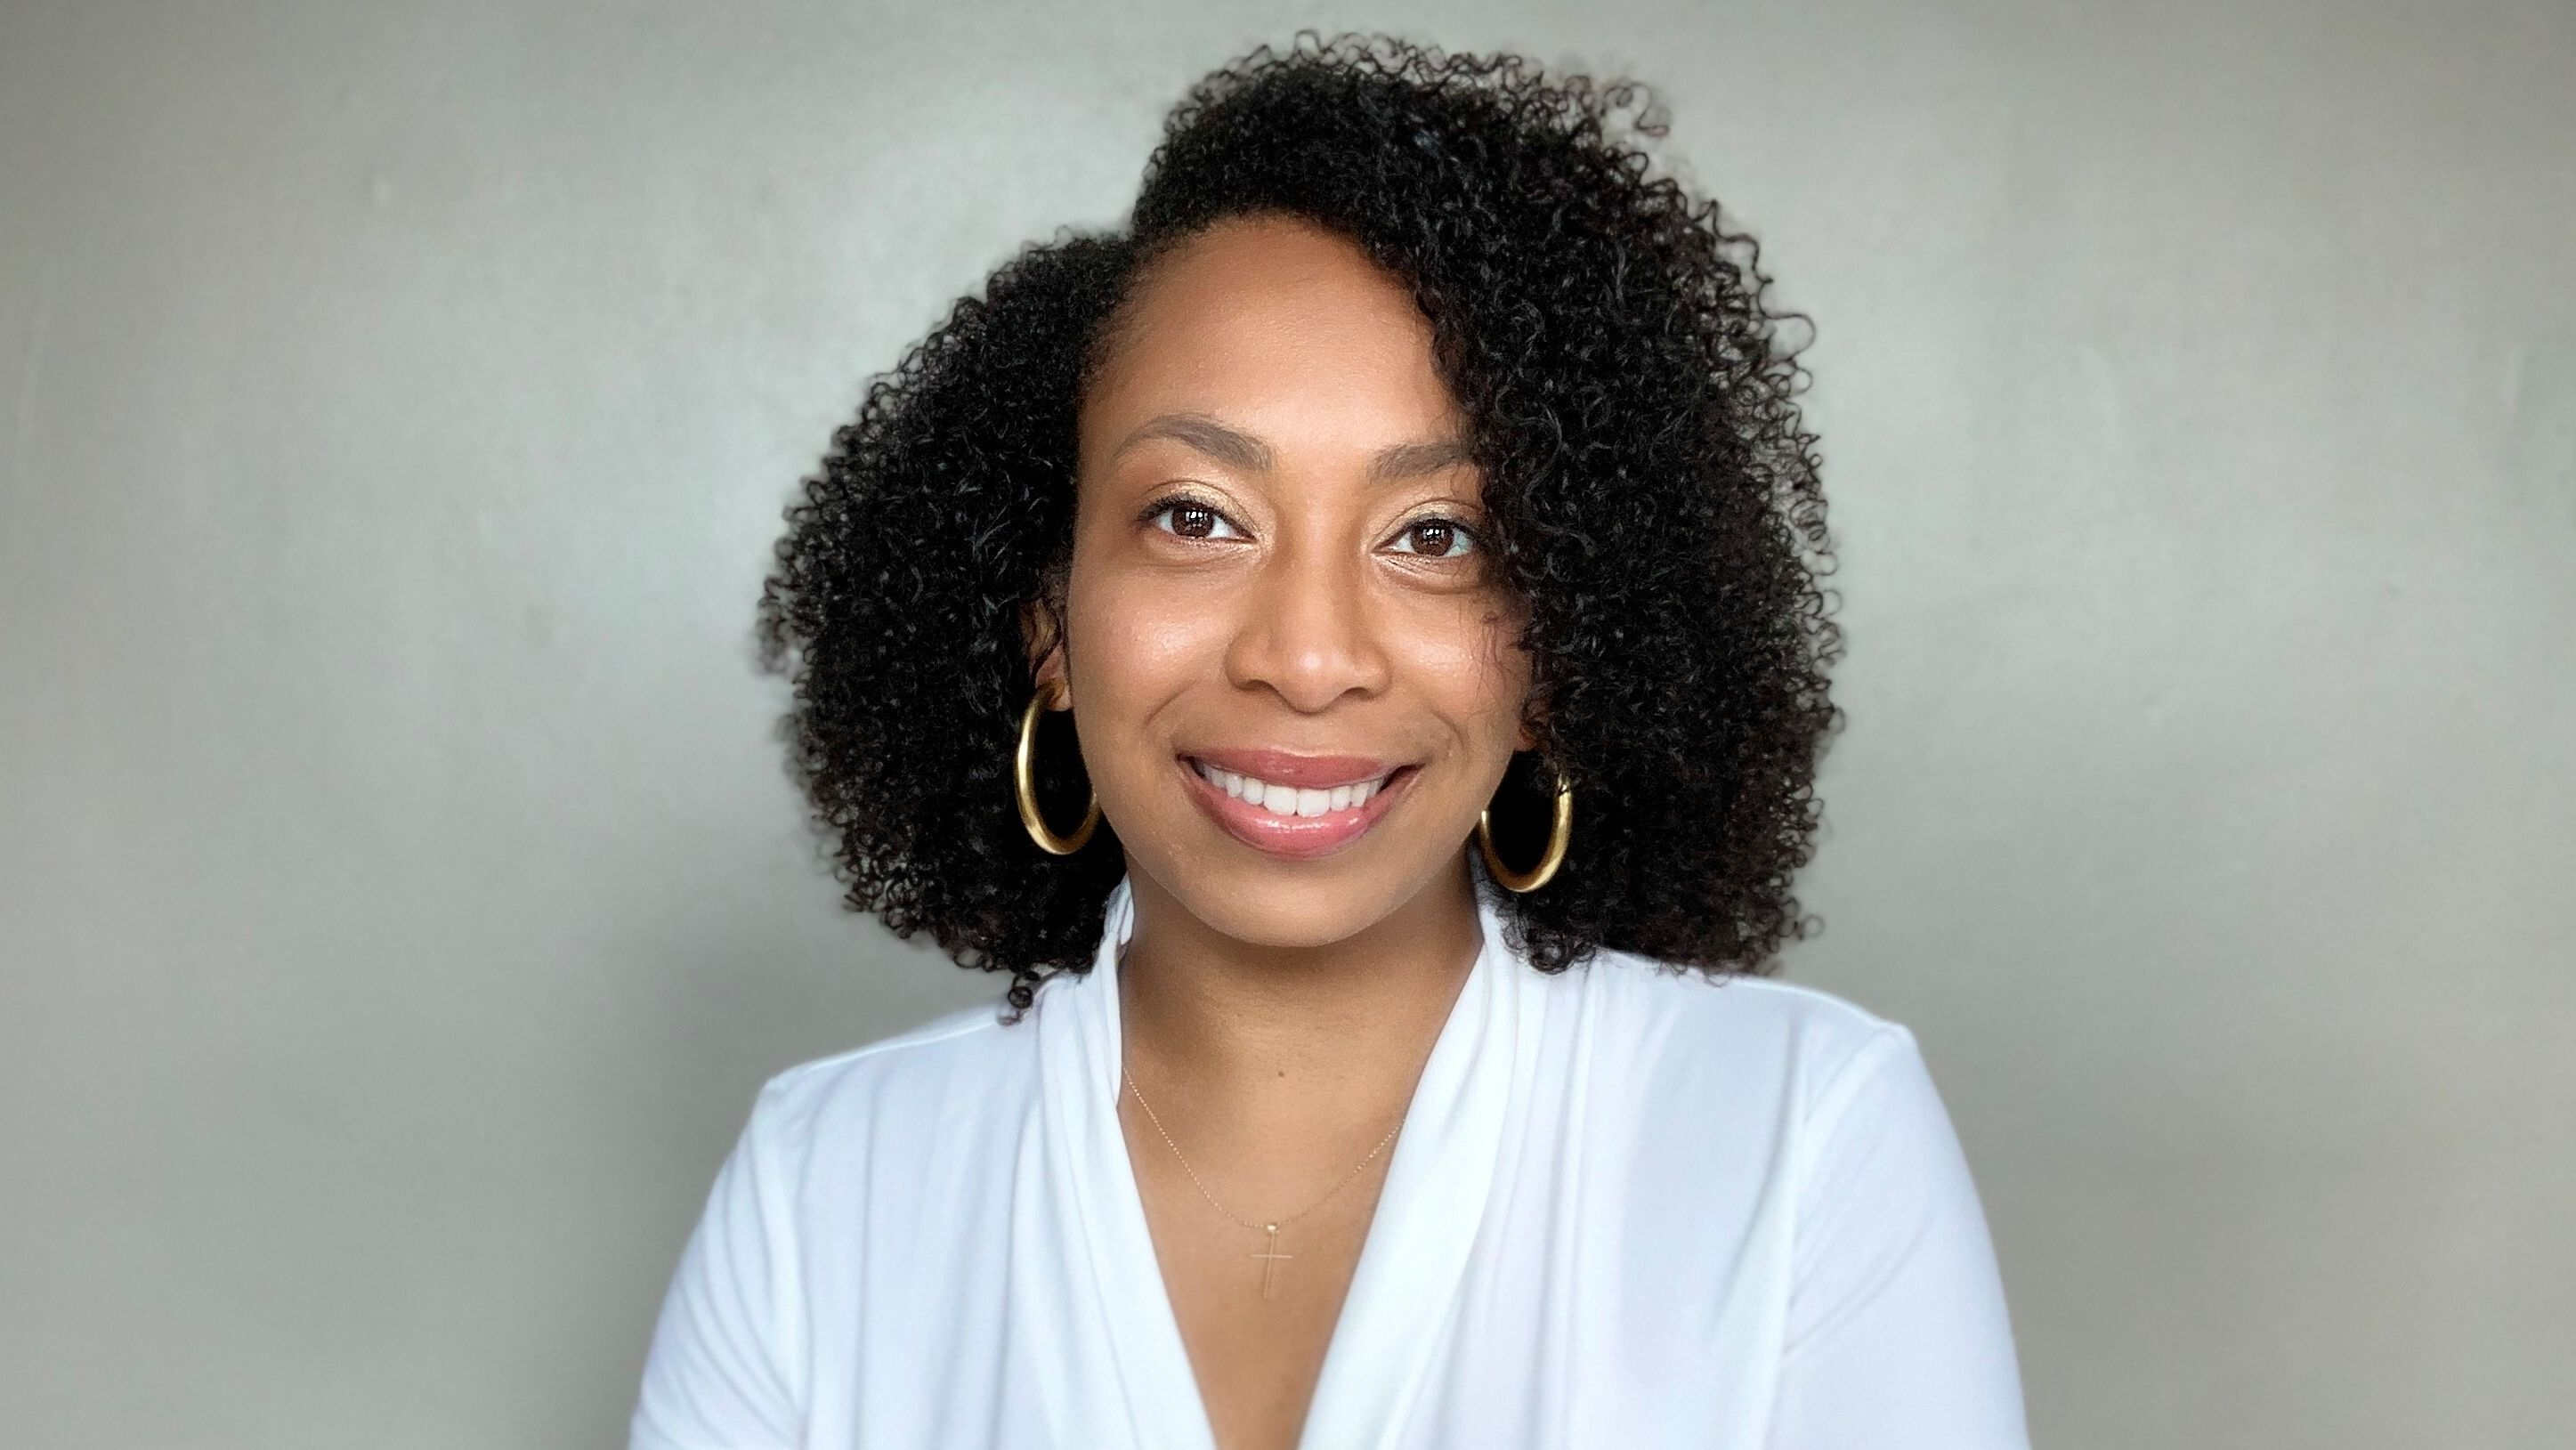 Image of Temple alumna Chelsey Lowe